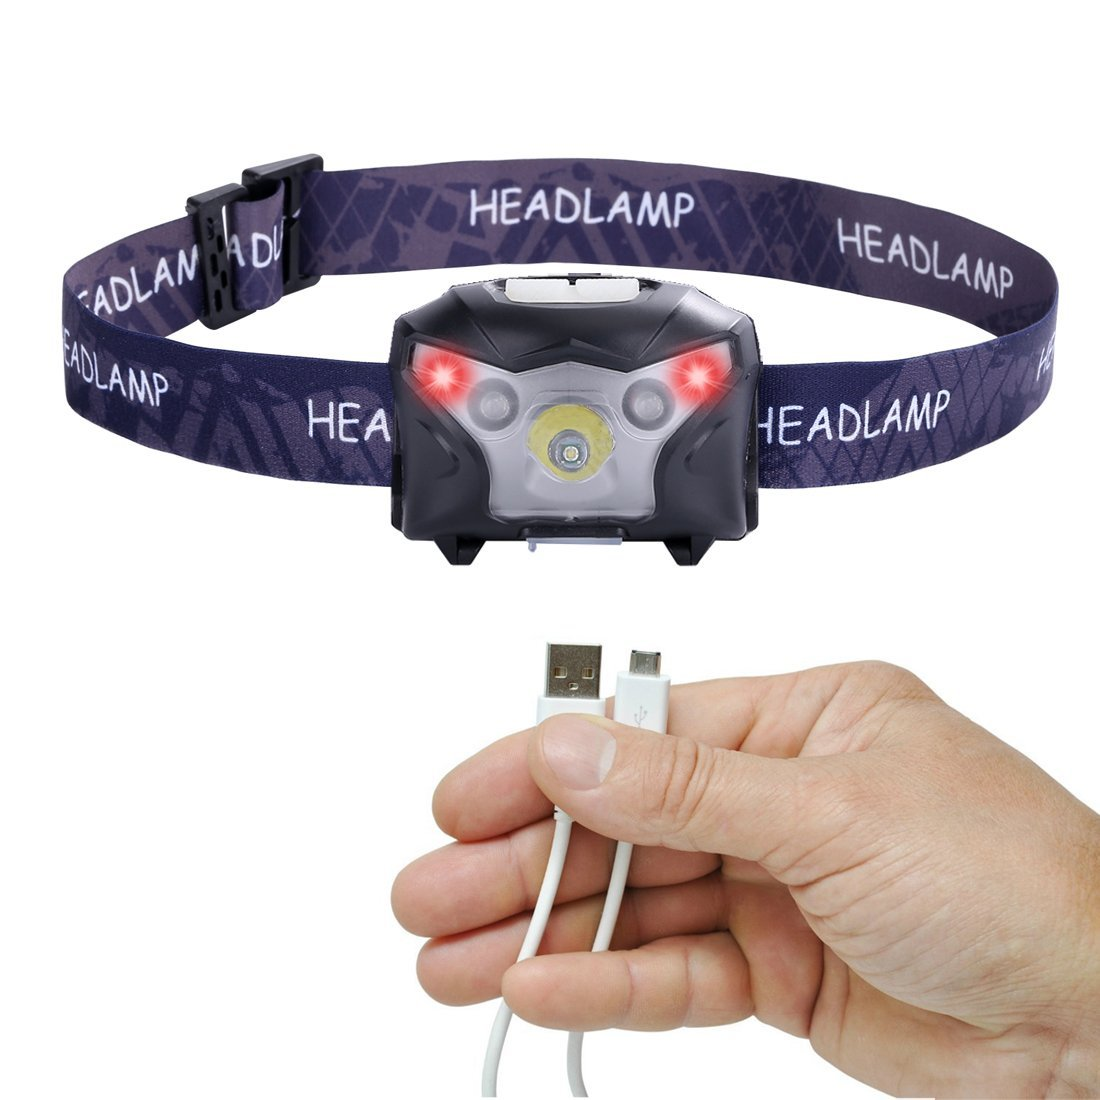 USB Rechargeable LED Headlamp Flashlight, Super Bright White Led and Red Light, Waterproof, Comfortable, Perfect Headlamps for Running, Walking, Camping, Reading, Hiking, Kids